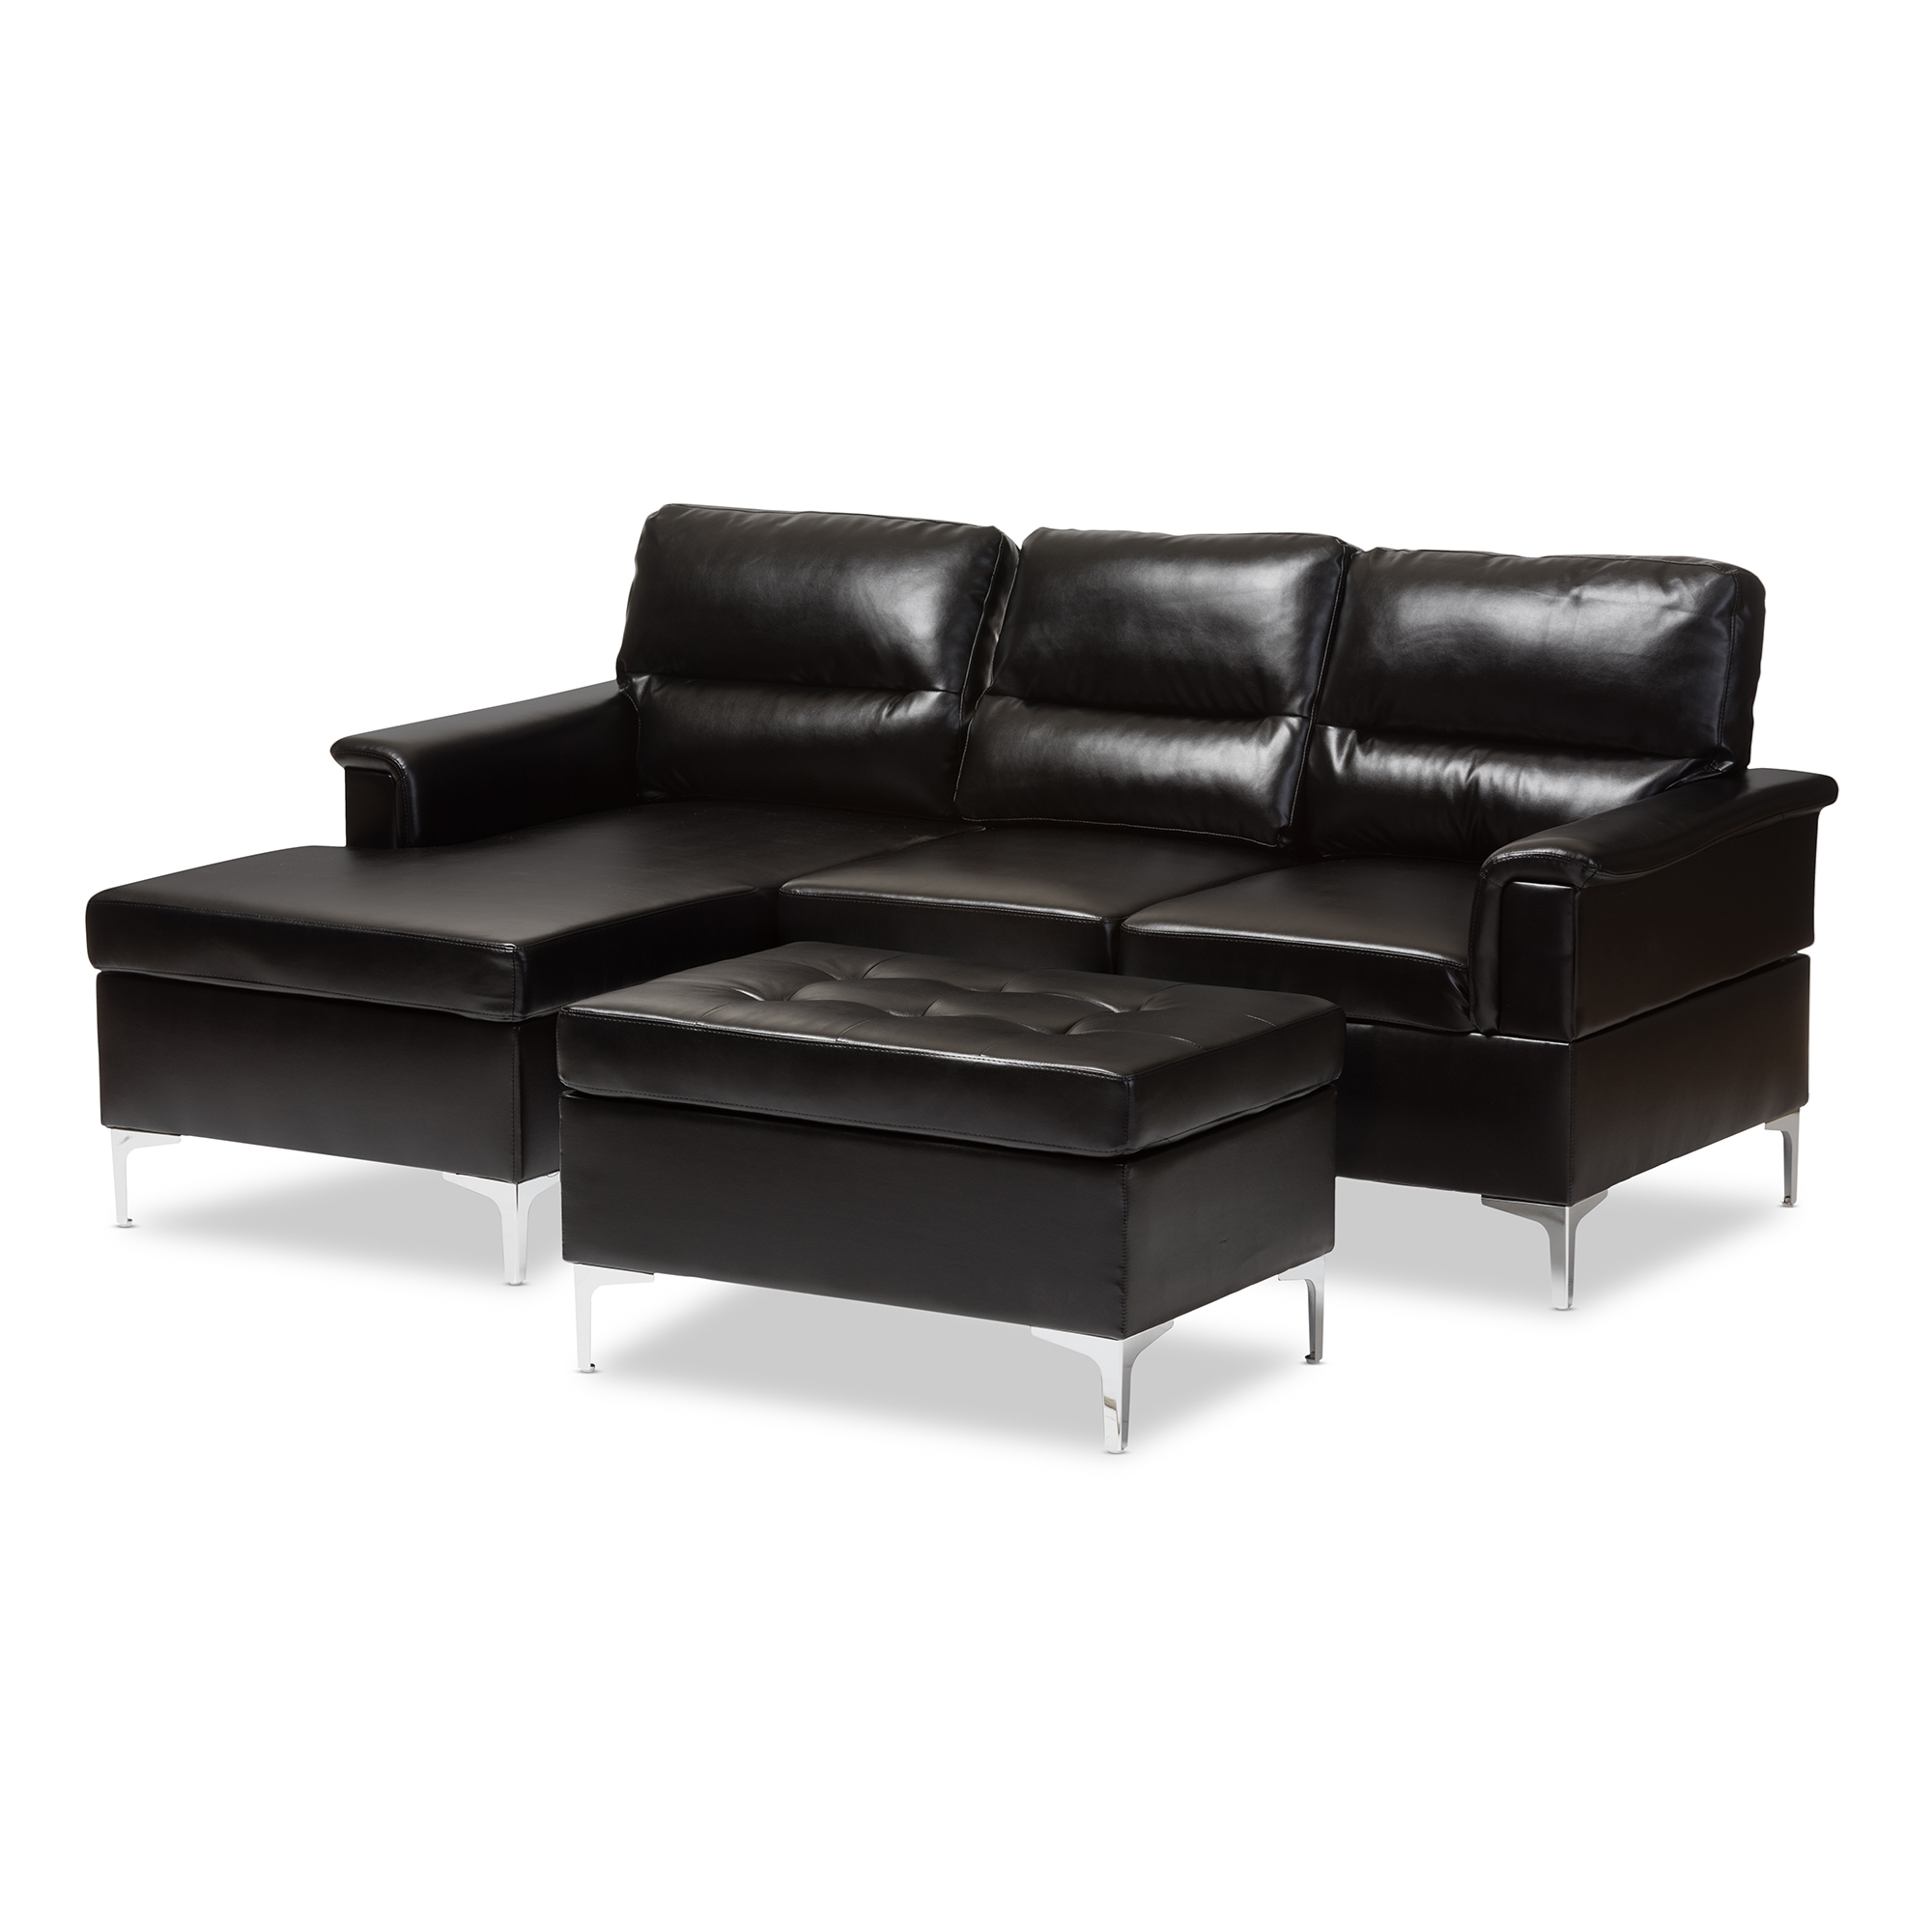 Baxton Studio Kinsley Modern And Contemporary Black Faux Leather  Upholstered 3 Piece Sectional Sofa And